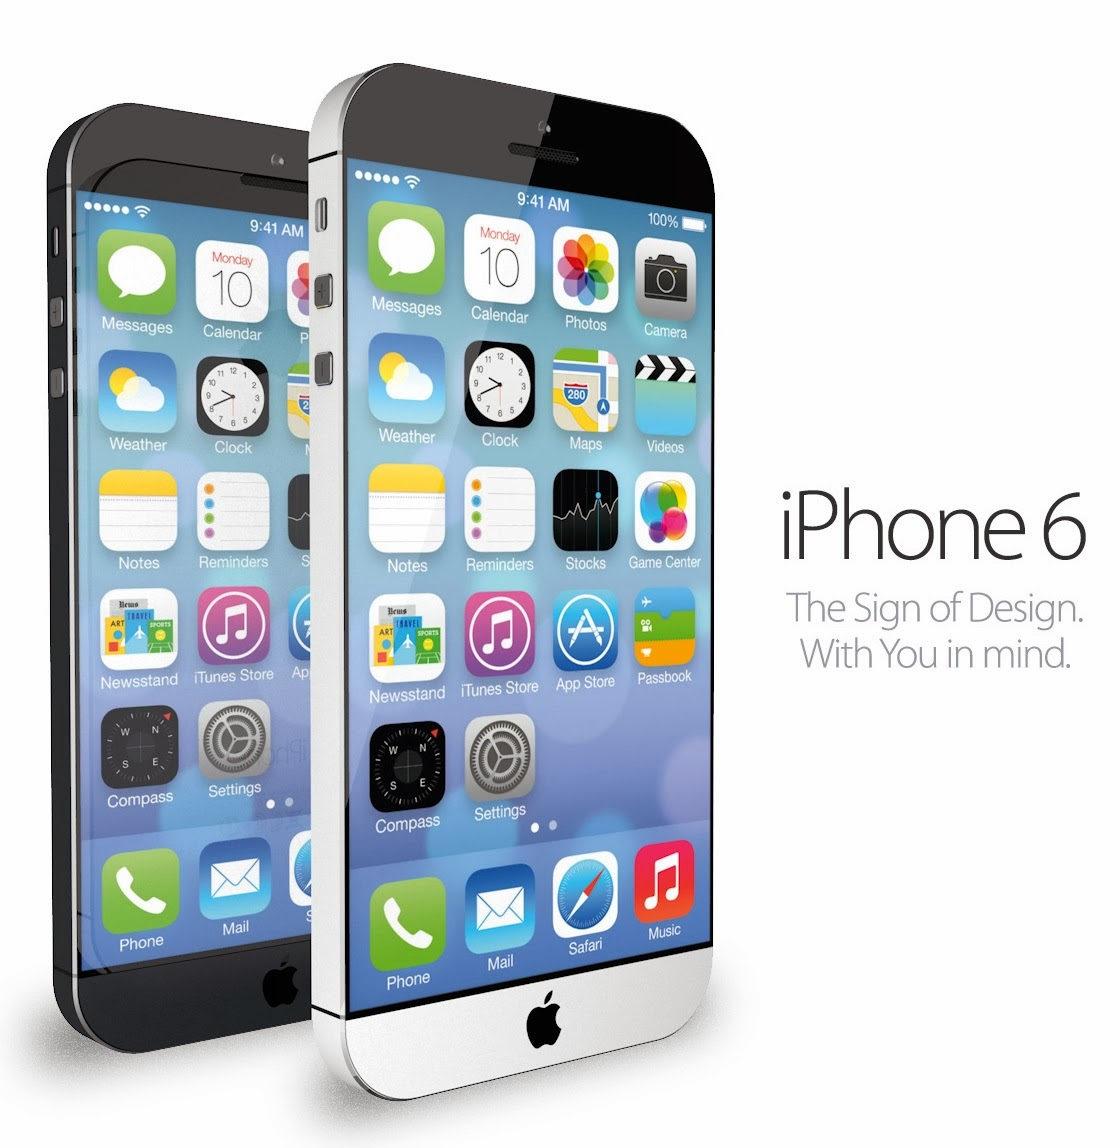 iPhone 6 June 2014